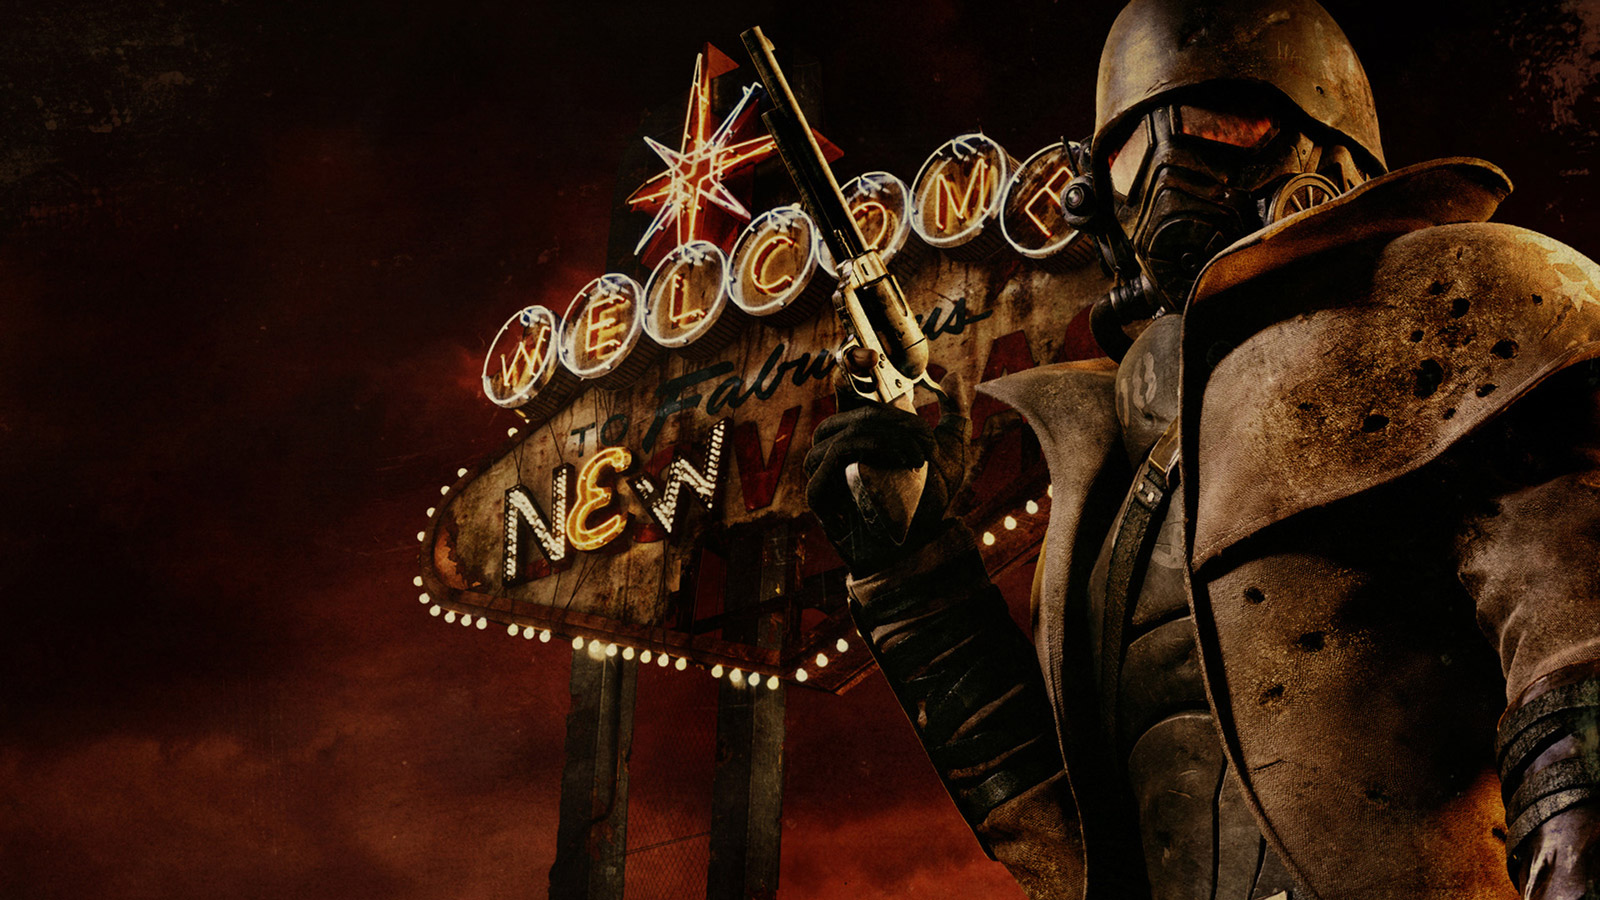 how to change fallout new vegas resolution